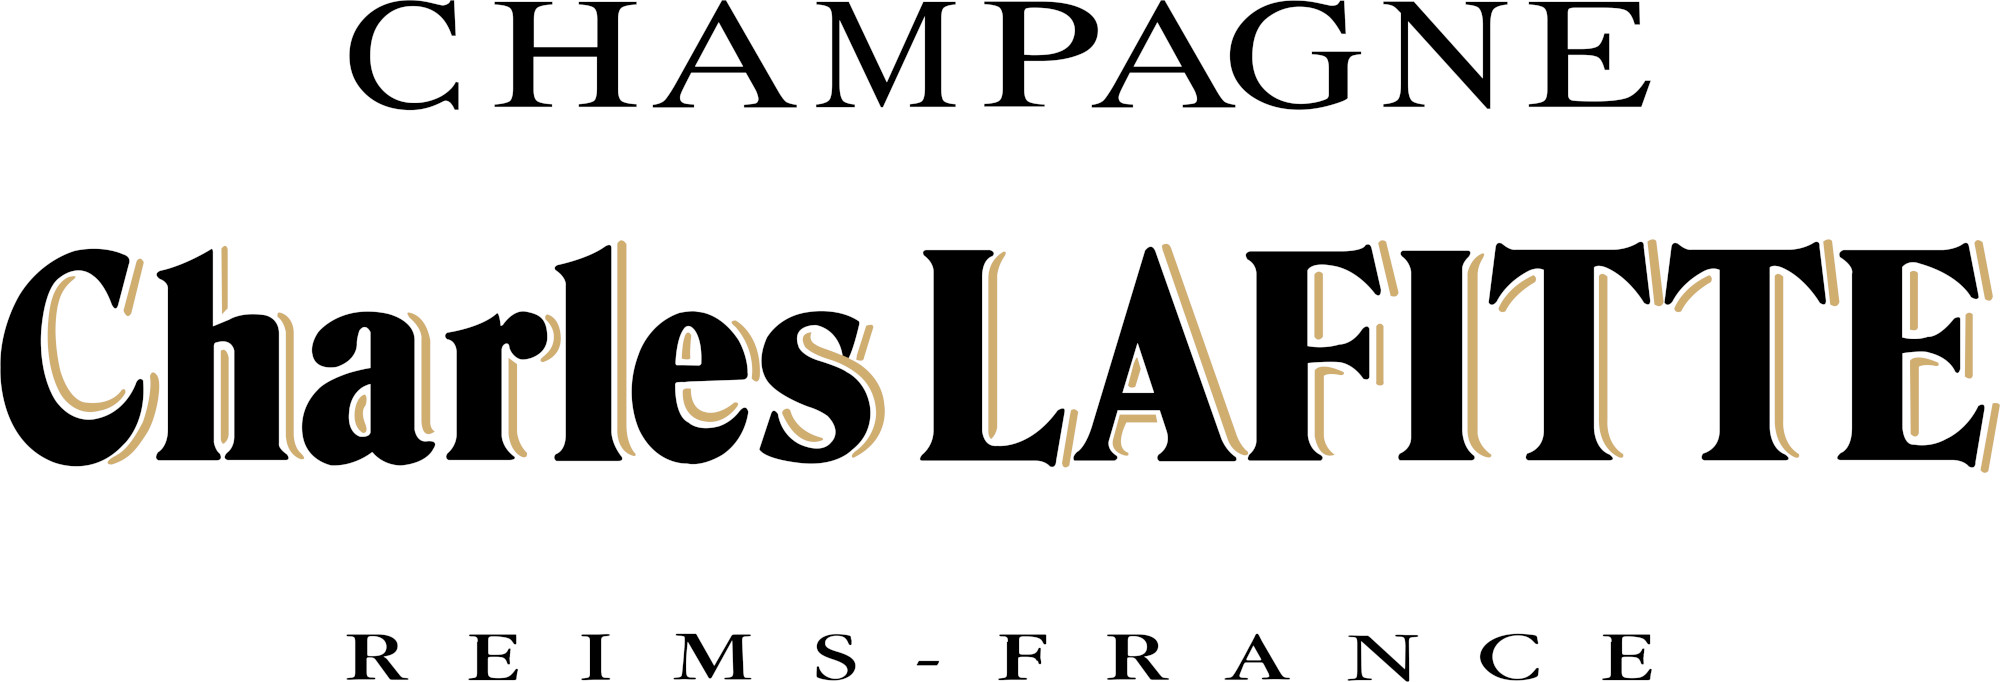 Charles Lafitte Champagner